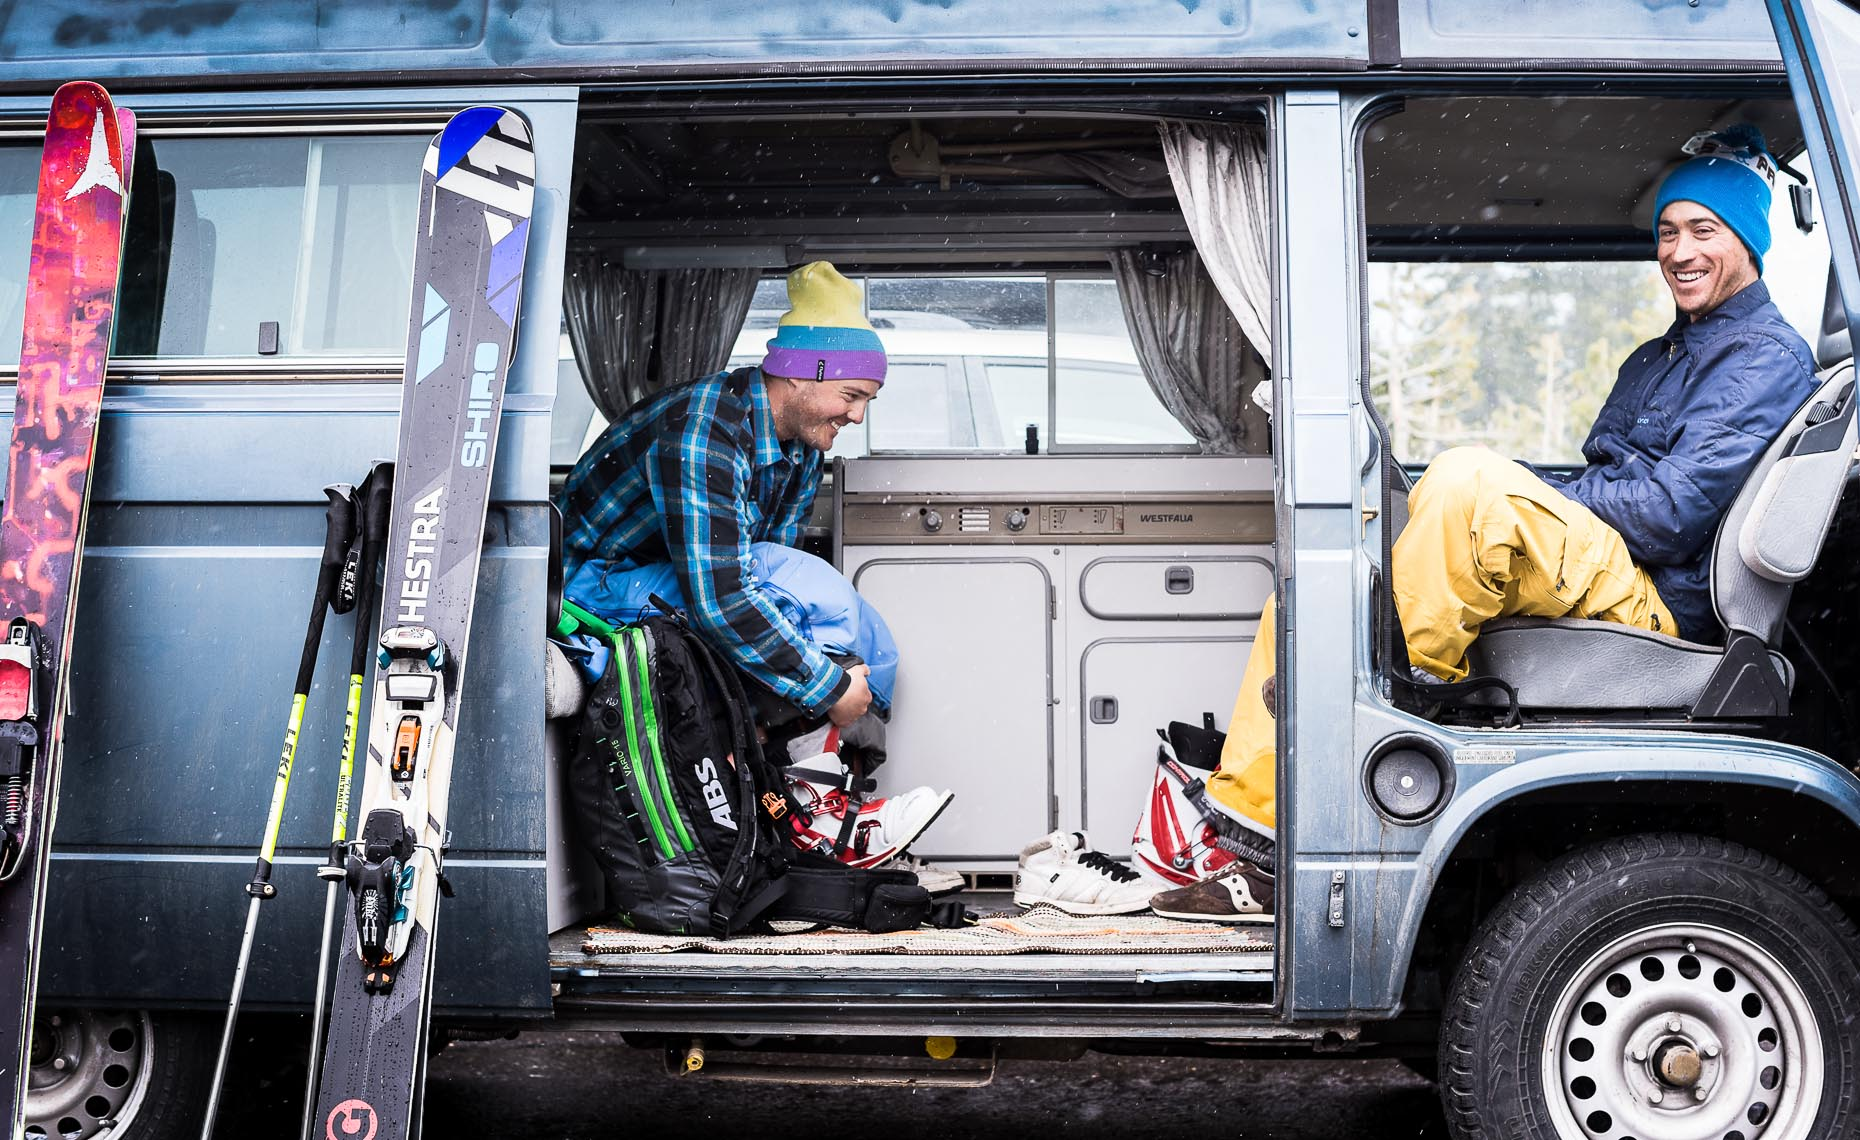 Van trip by skiers in whistler by pro photographer.